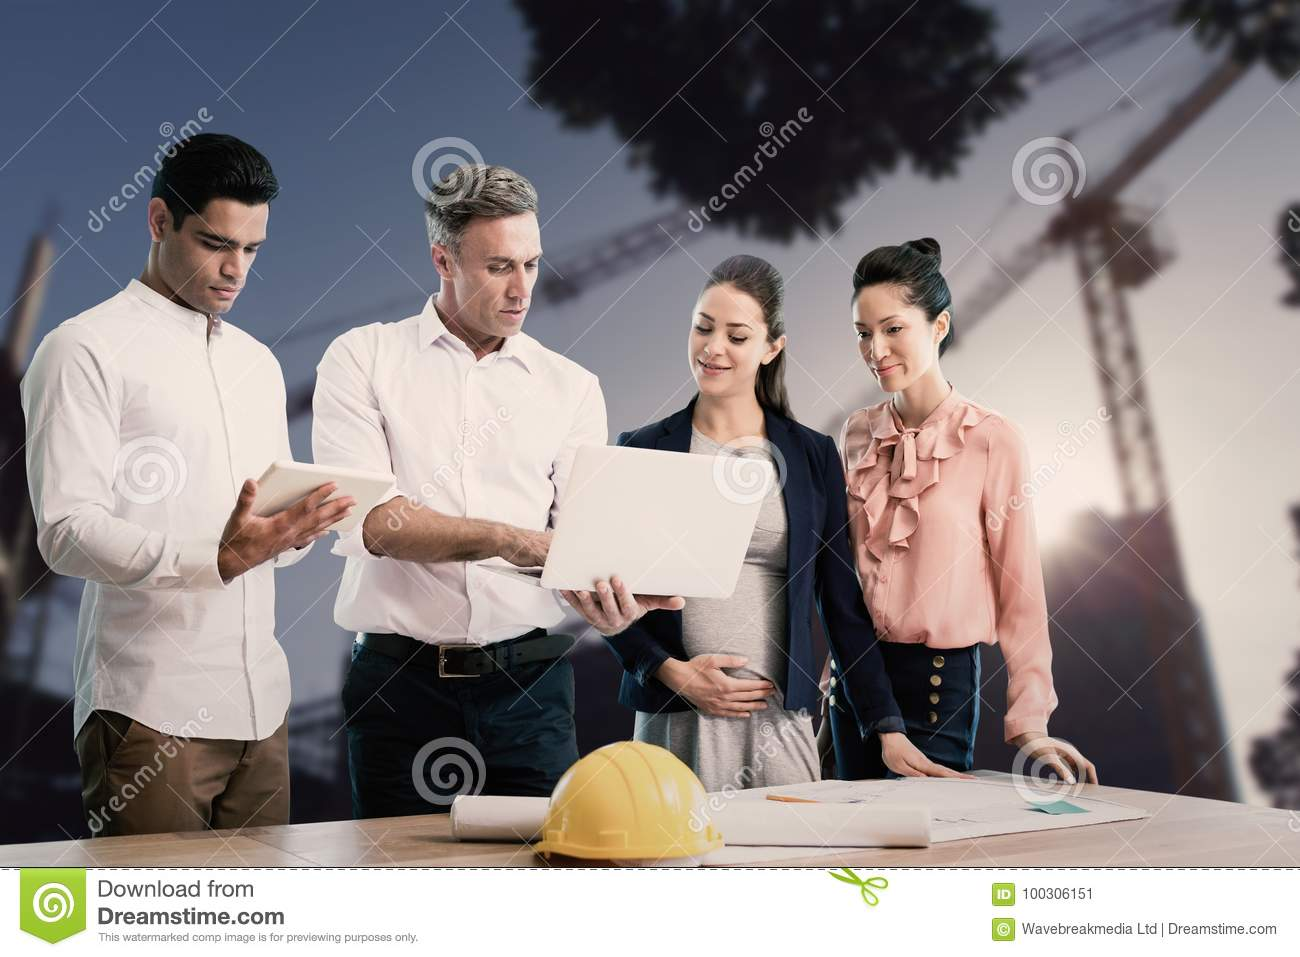 Composite image of male architect showing laptop to coworkers